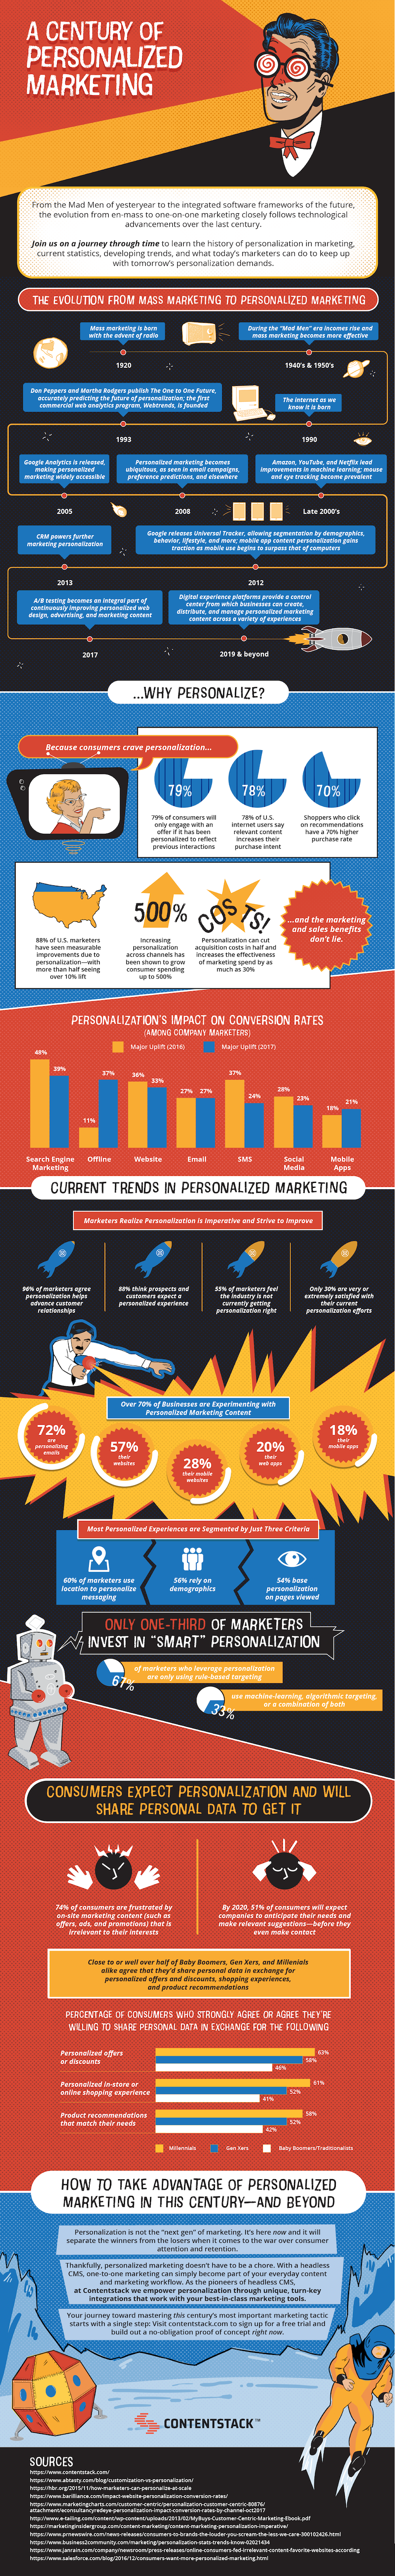 a-century-of-marketing-personalization-infographic.png